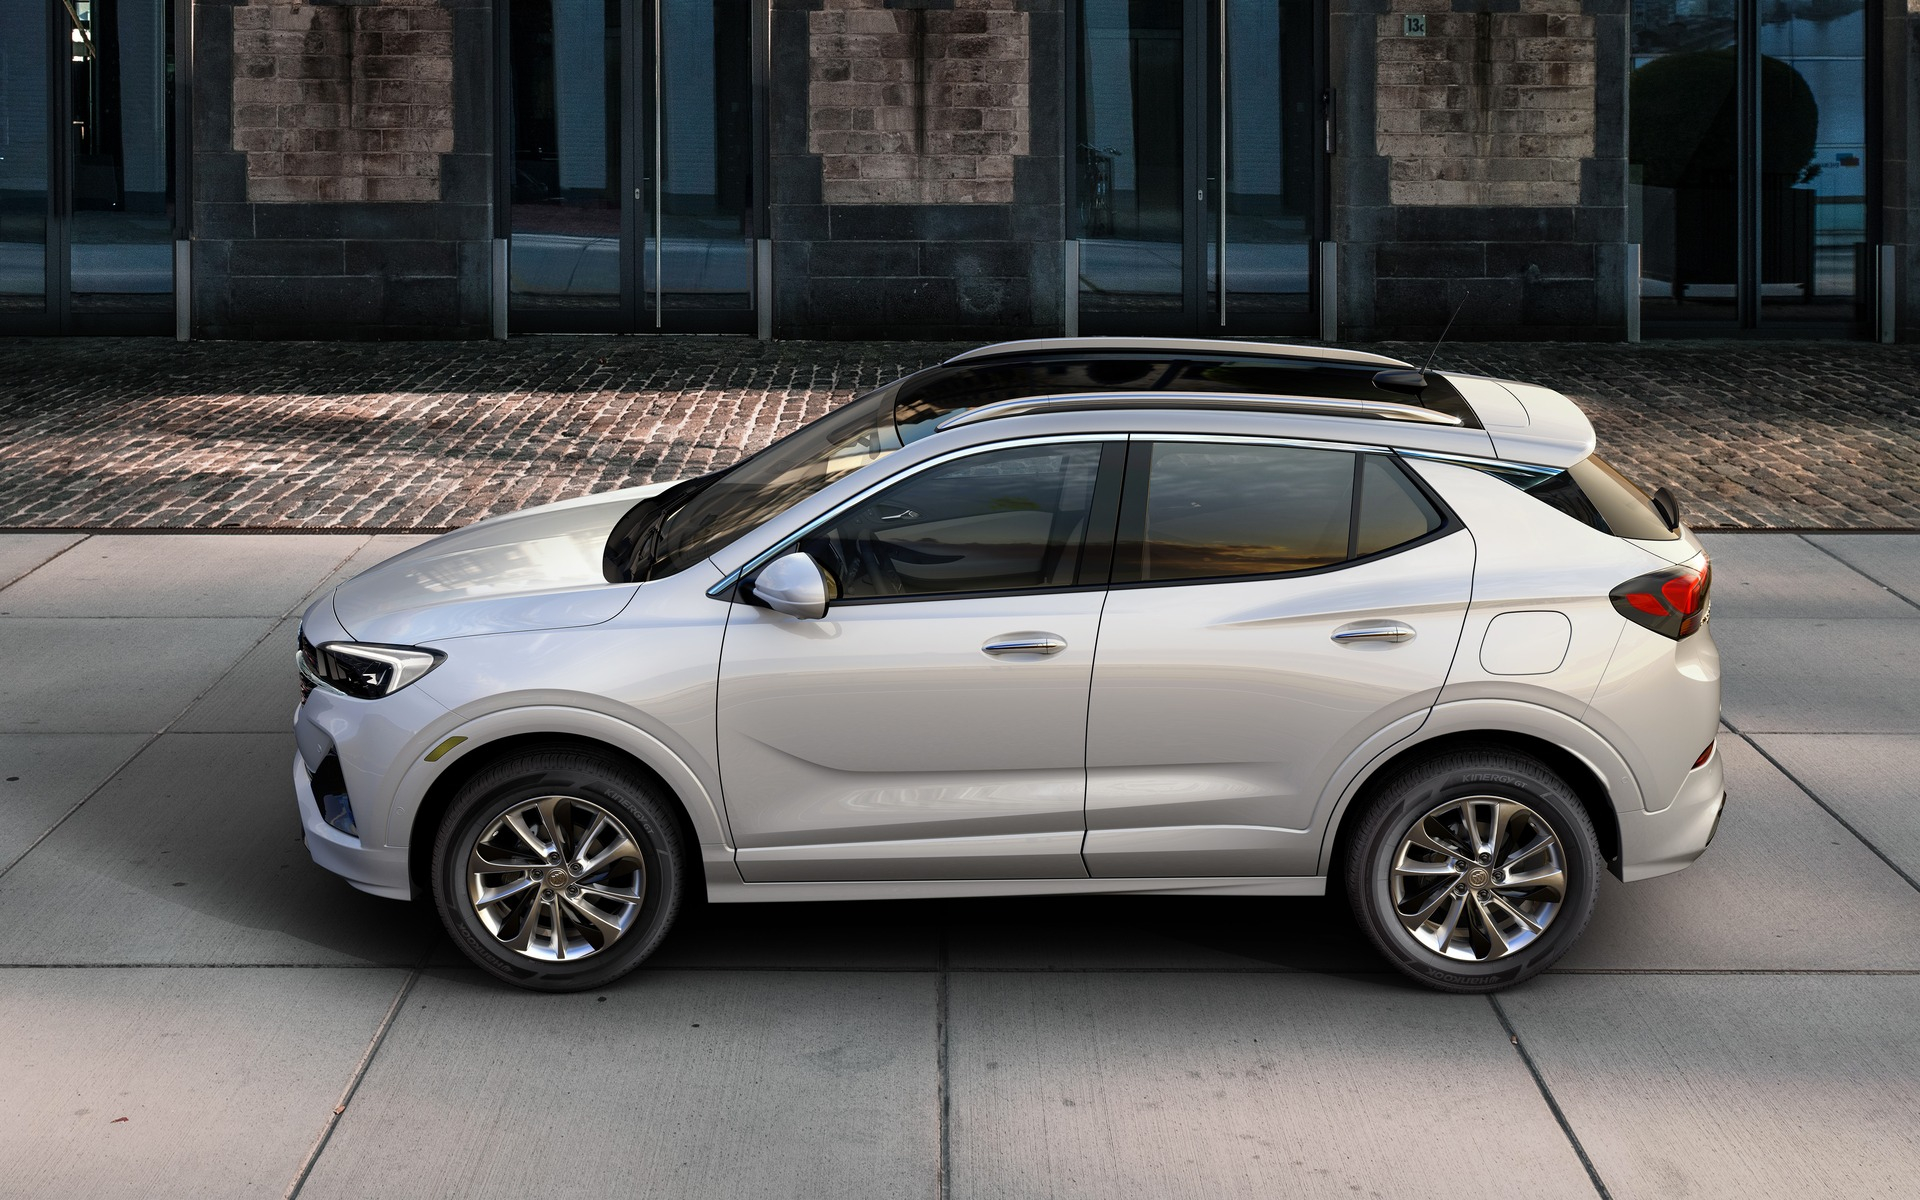 Buick Encore Gx To Offer A Pair Of Three-Cylinder Engines Where Is The 2021 Buick Encore Gx Built